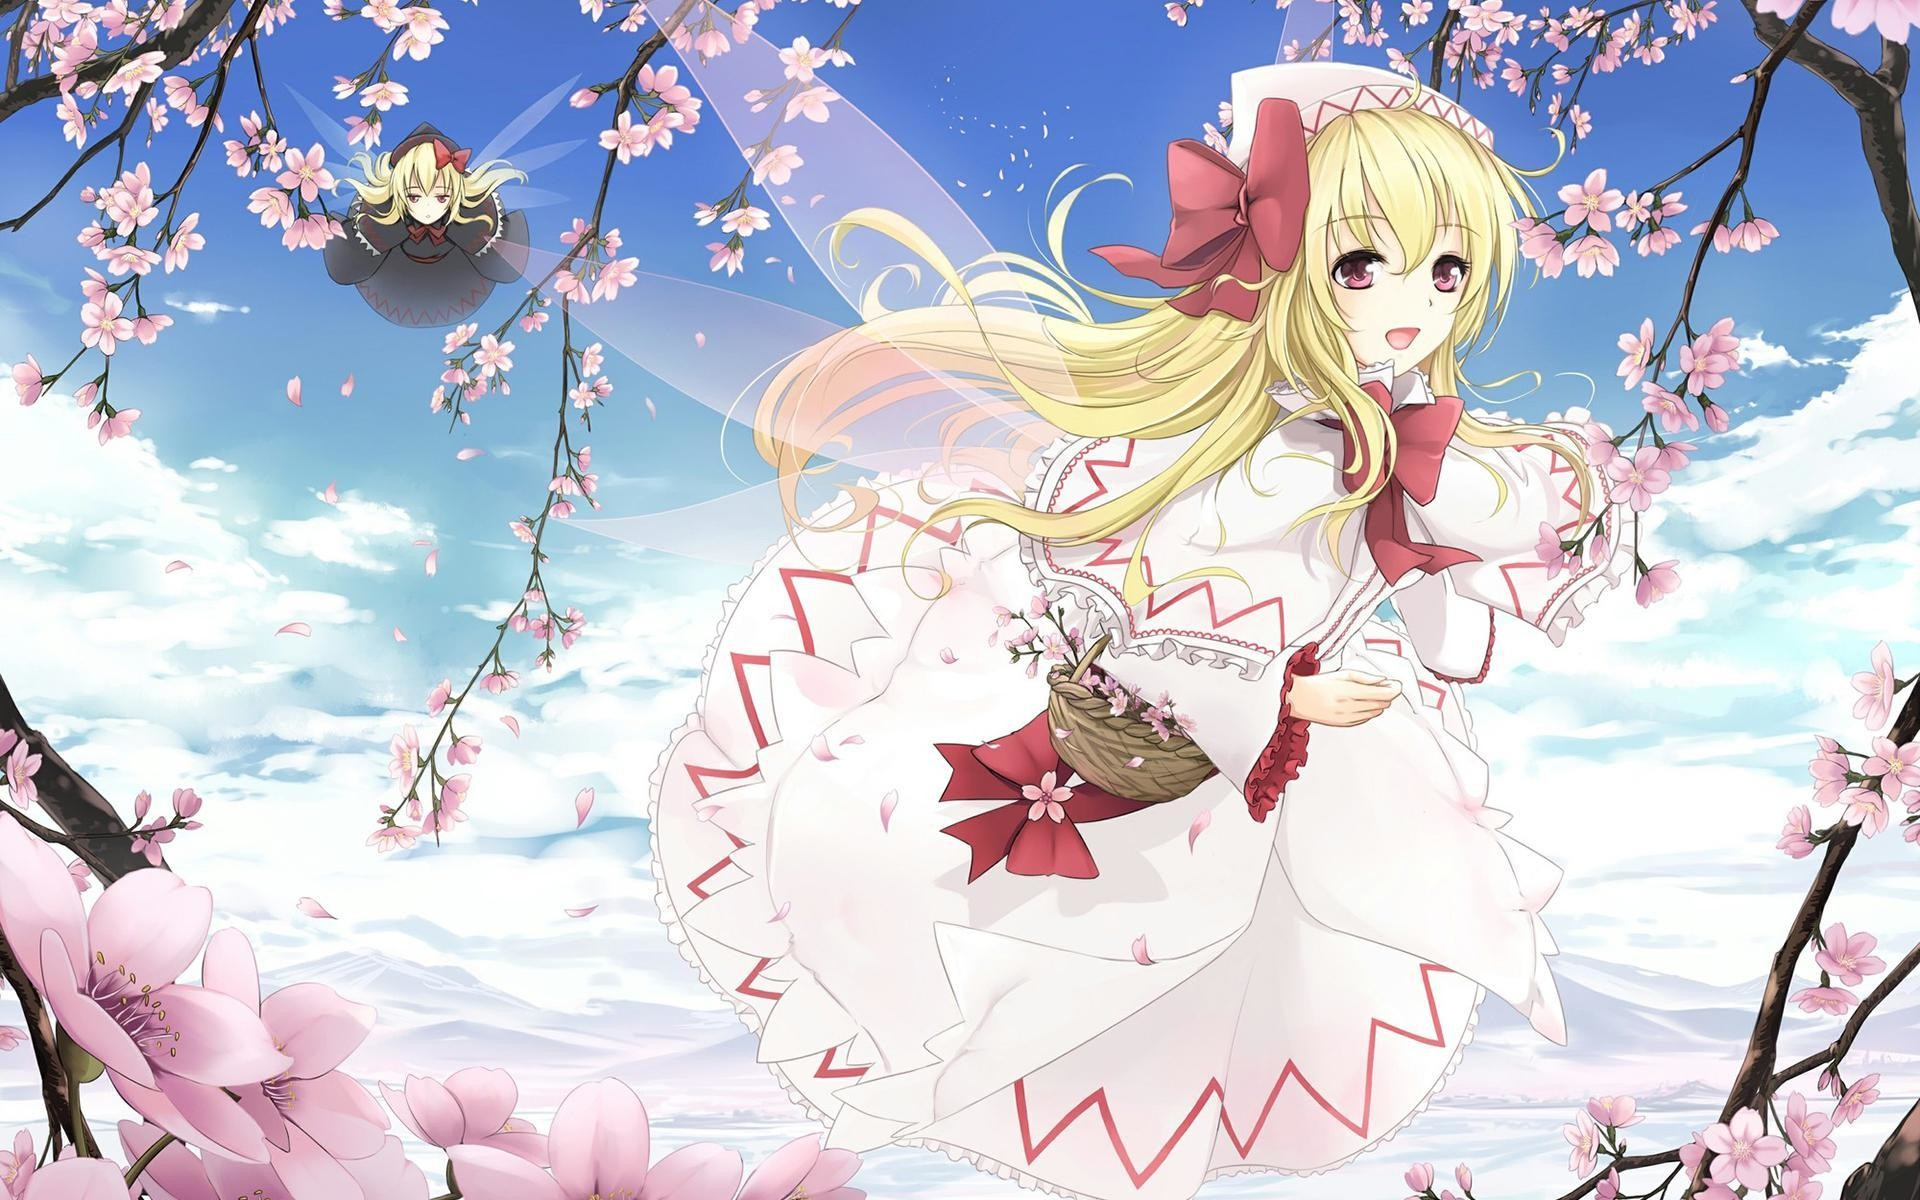 1920x1200 Anime girl, Japanese anime, ACG, The second element, Spring, Peach, Flower  Fairy, Cute, Sweet